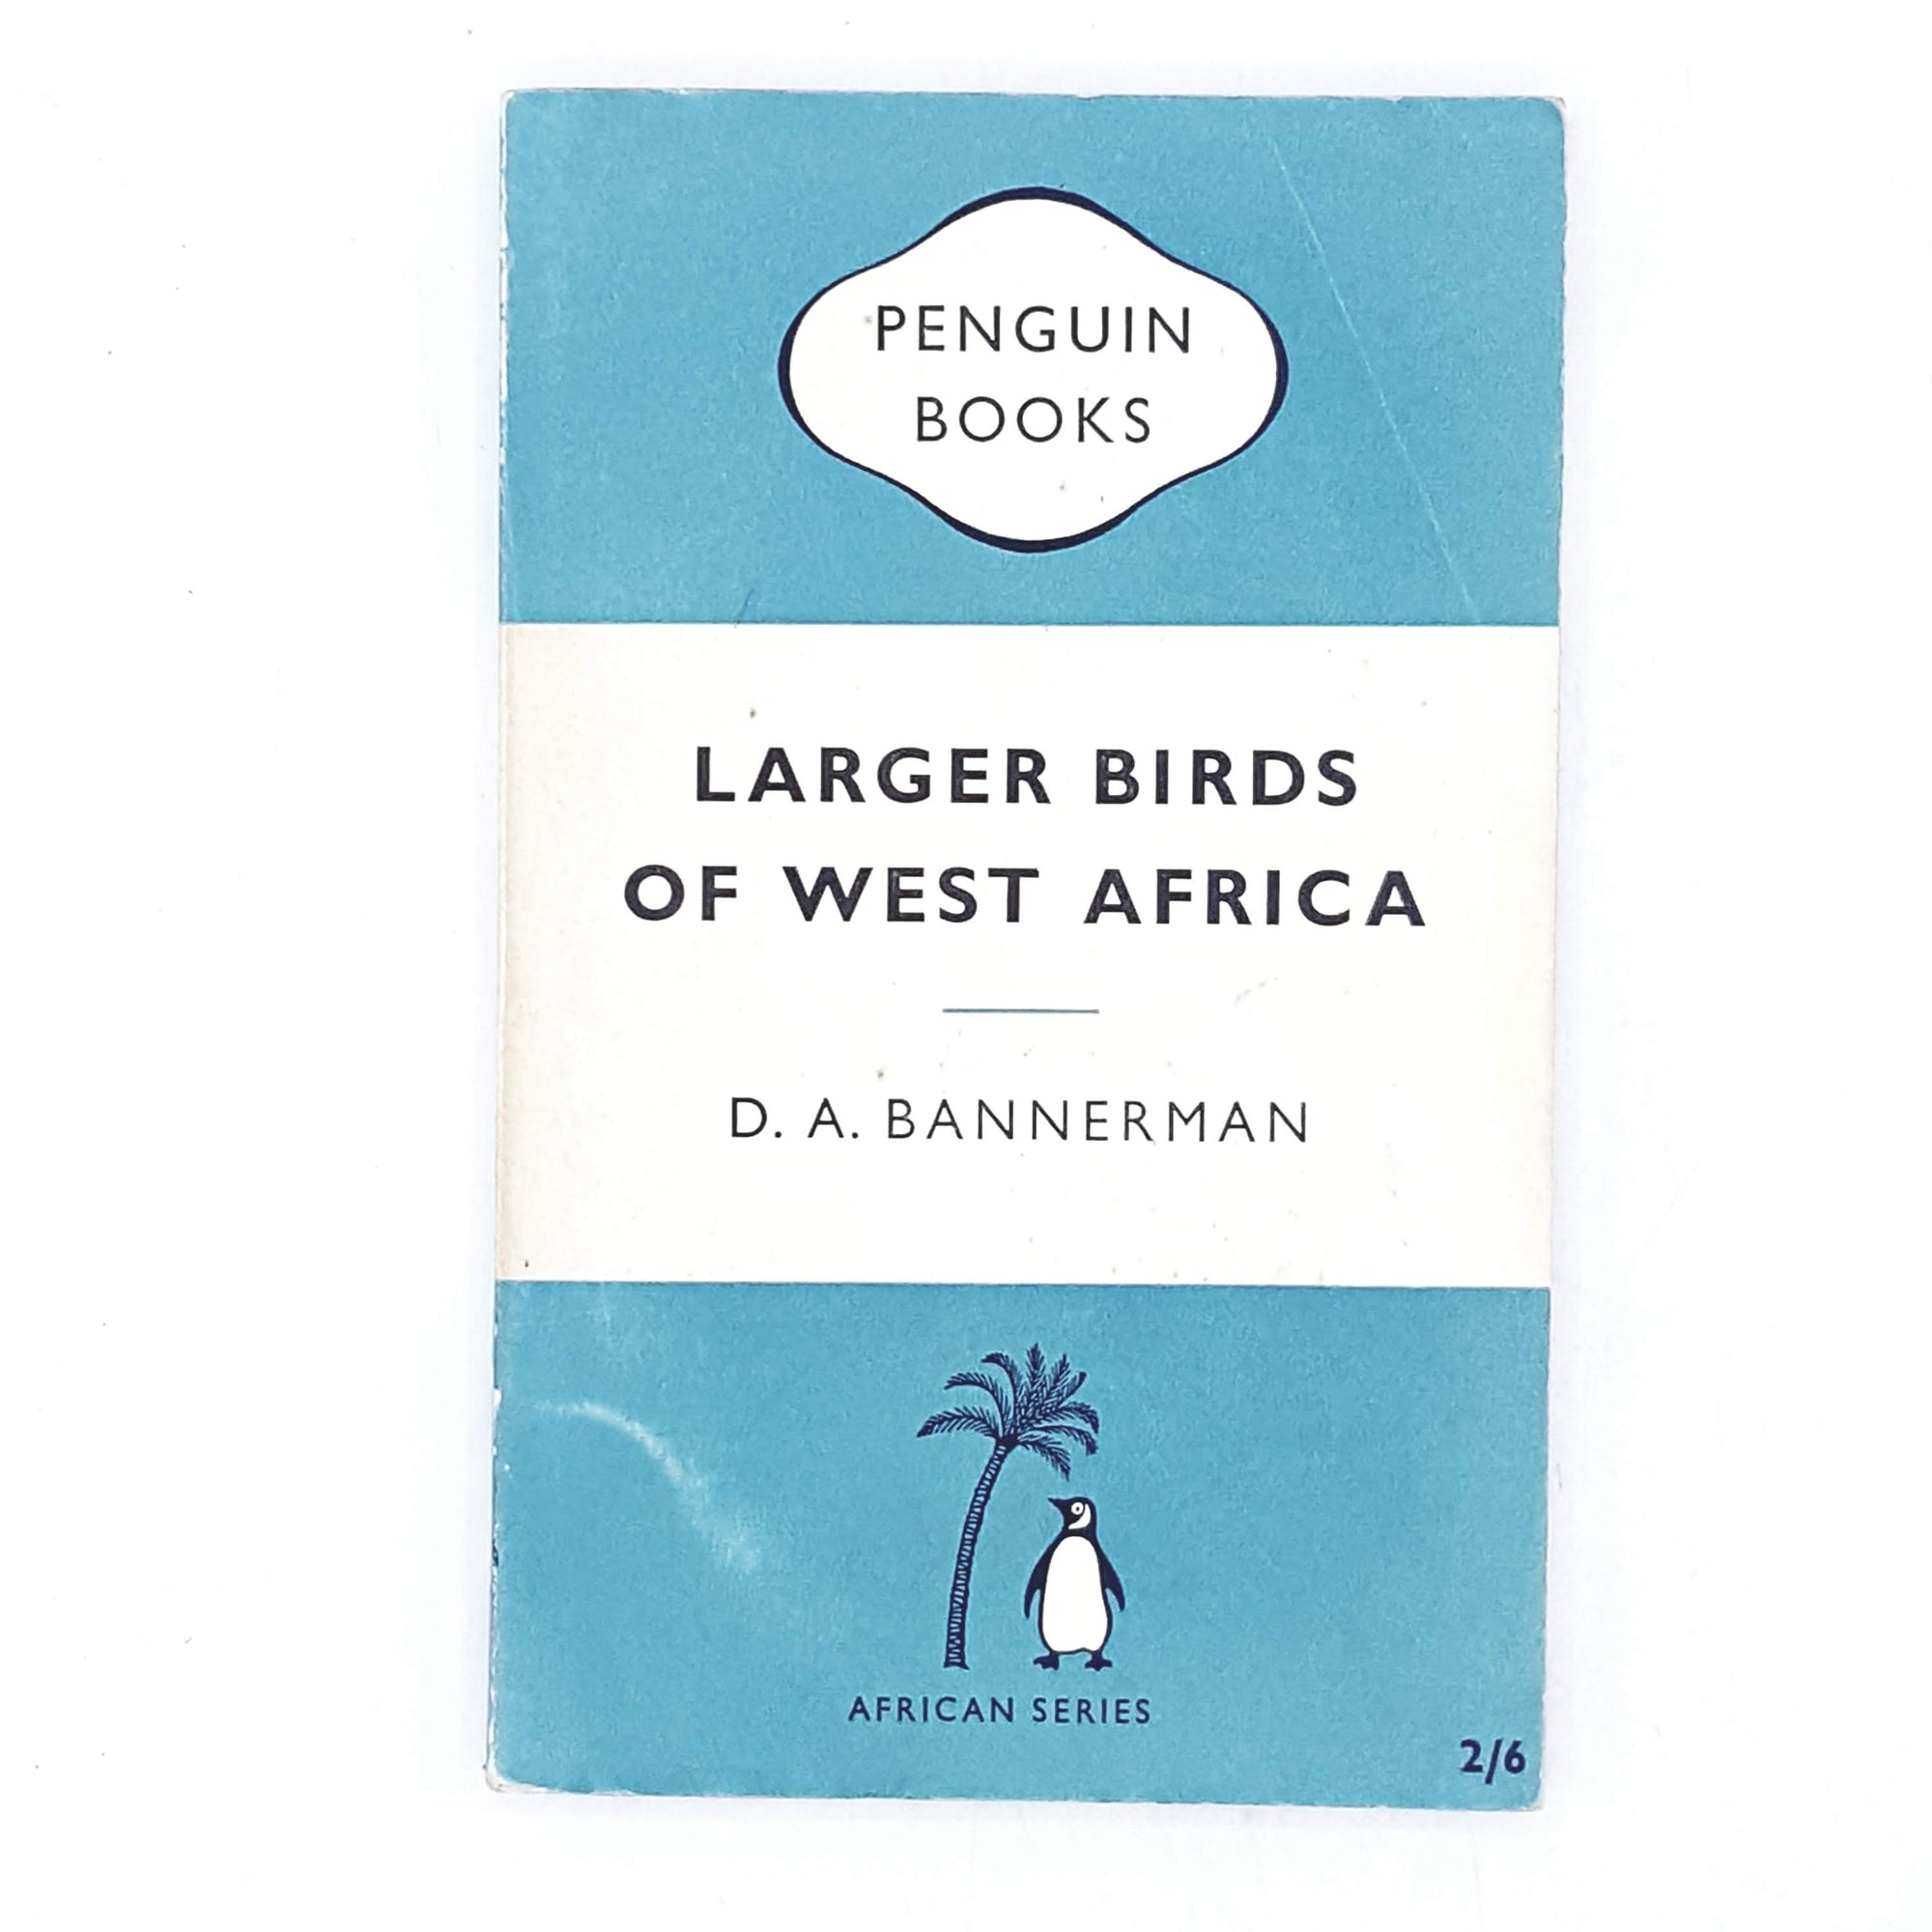 Larger Birds of West Africa by D. A. Bannerman 1958